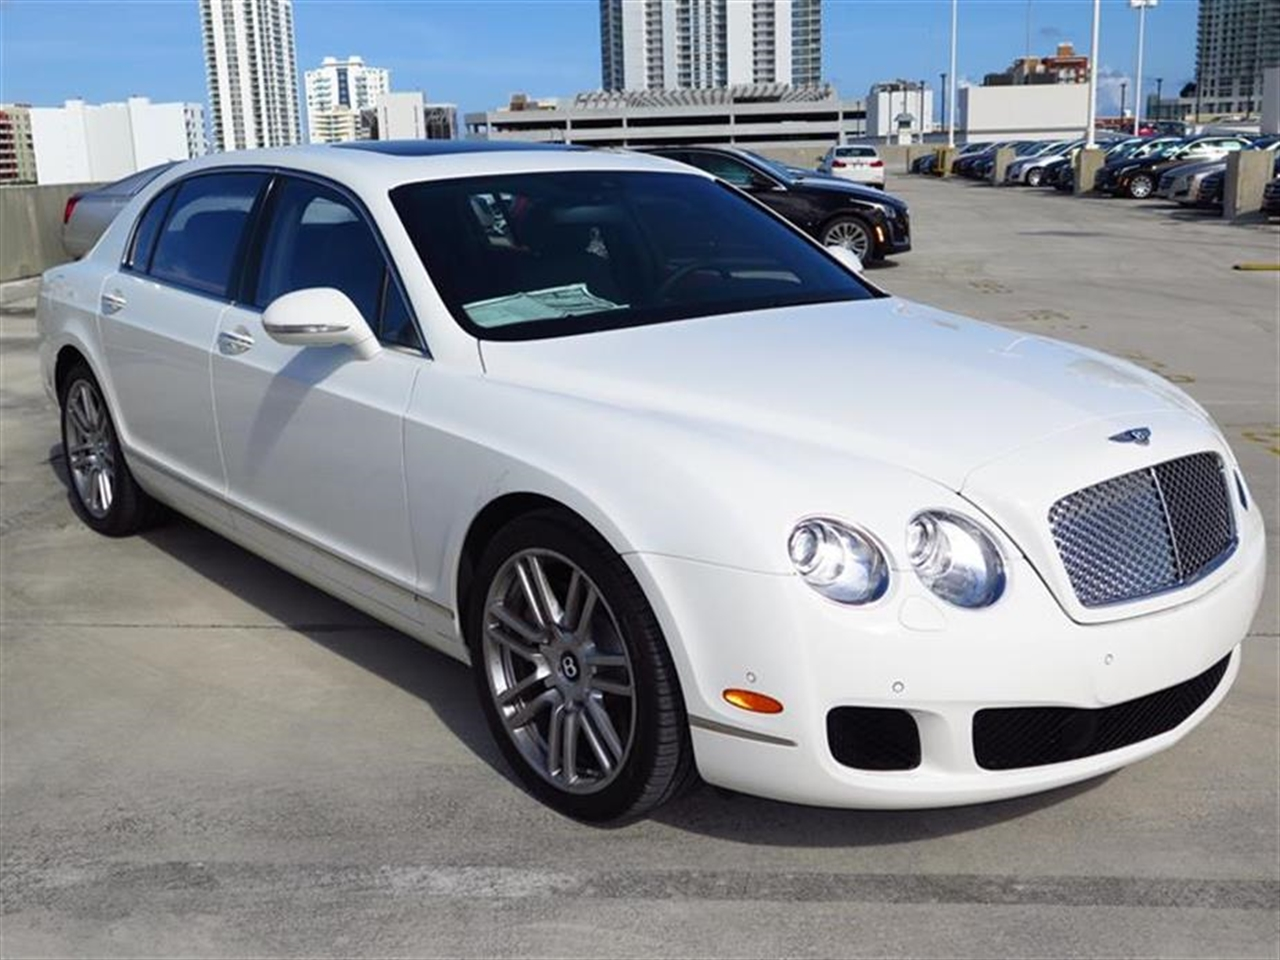 2013 BENTLEY CONTINENTAL FLYING SPUR 4dr Sdn 152 miles 4-spoke monotone leather trimmed steering w